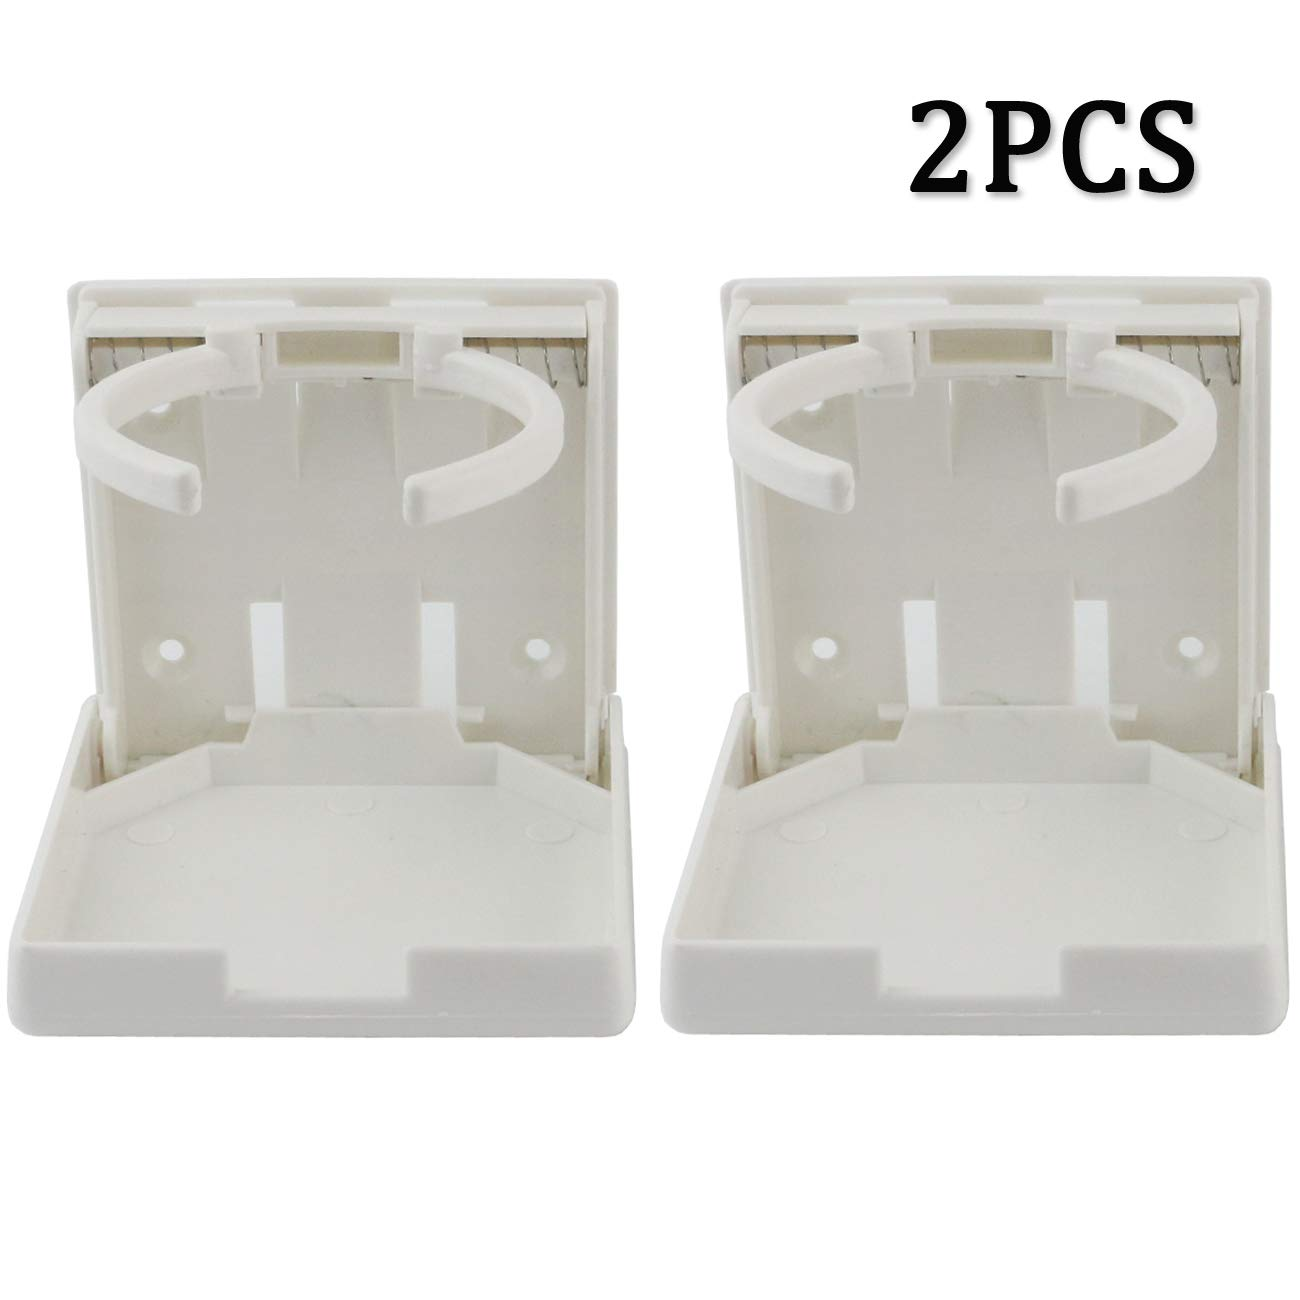 2 Pack Universal Adjustable Folding Drink Holder with Screws for Holding Mugs Adjustable Cup Holder for Boat//Car//Trucks//RVs//Vans//Home//Leisure Centre Large Drinks and Almost Any Size Bottle